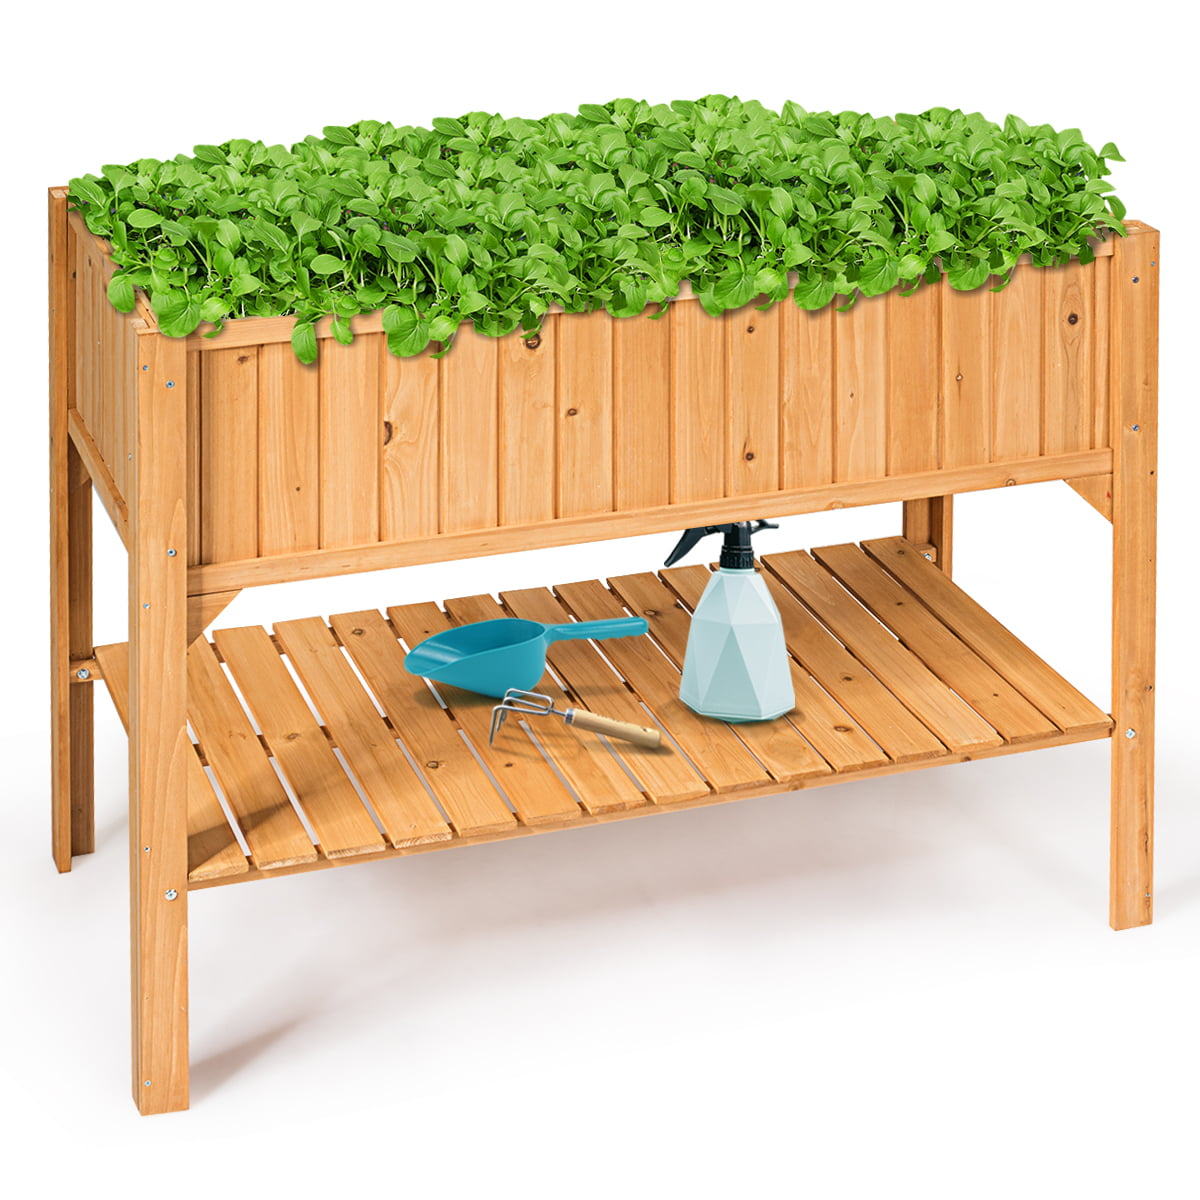 Raised Garden Bed Elevated Planter Box Shelf Standing